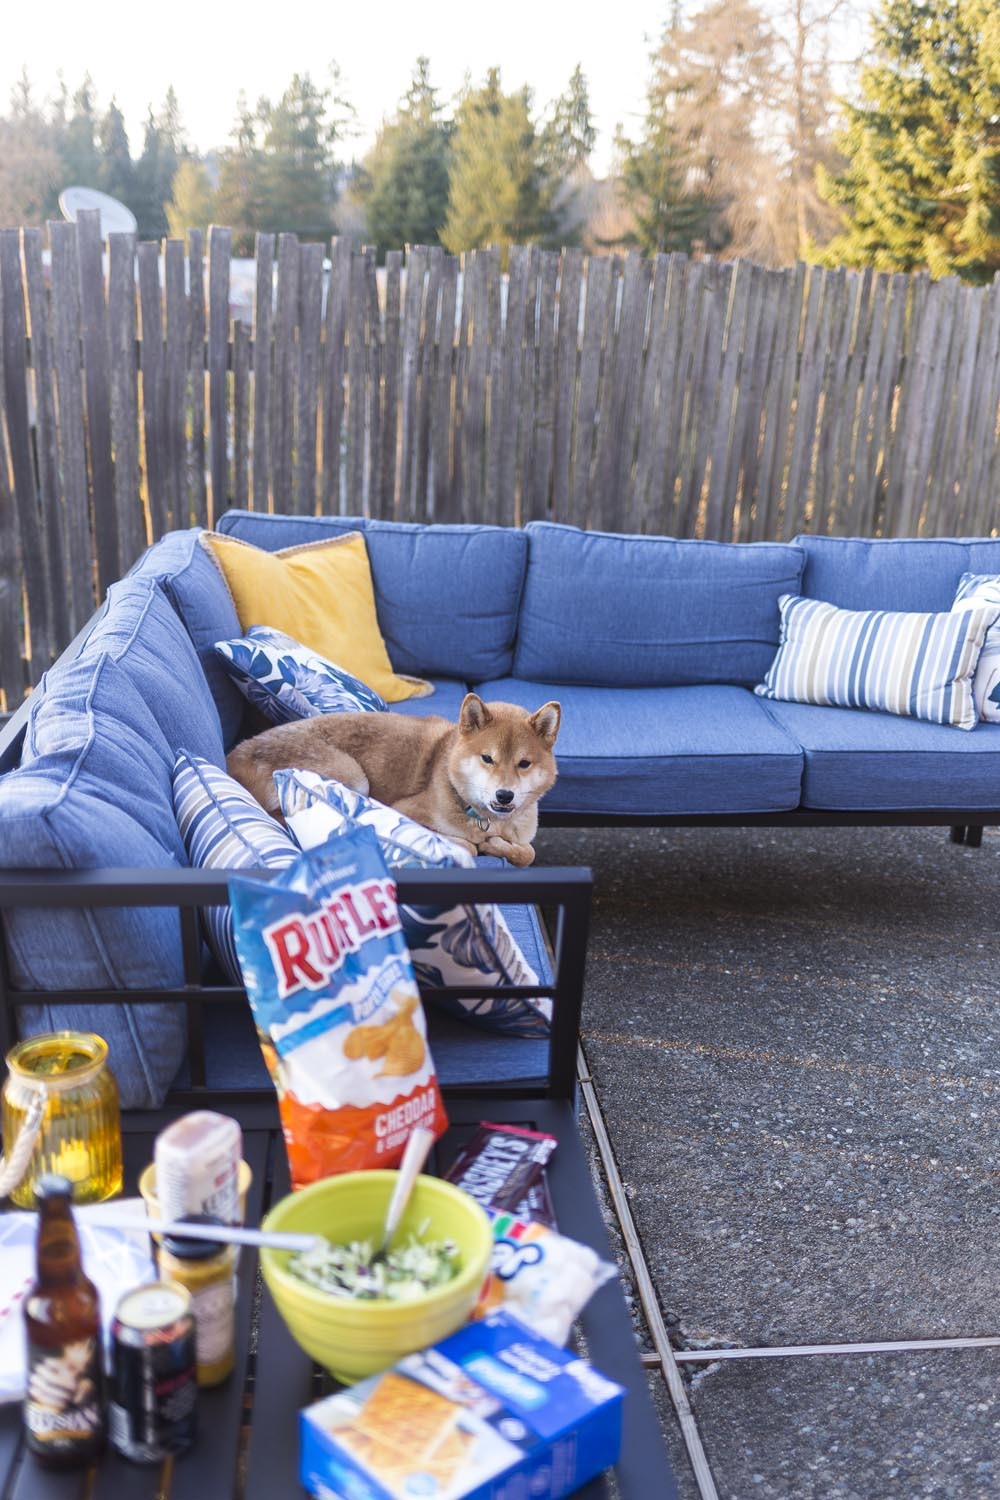 Pleasing A Backyard Upgrade For Spring With Fred Meyer Hello Rigby Uwap Interior Chair Design Uwaporg